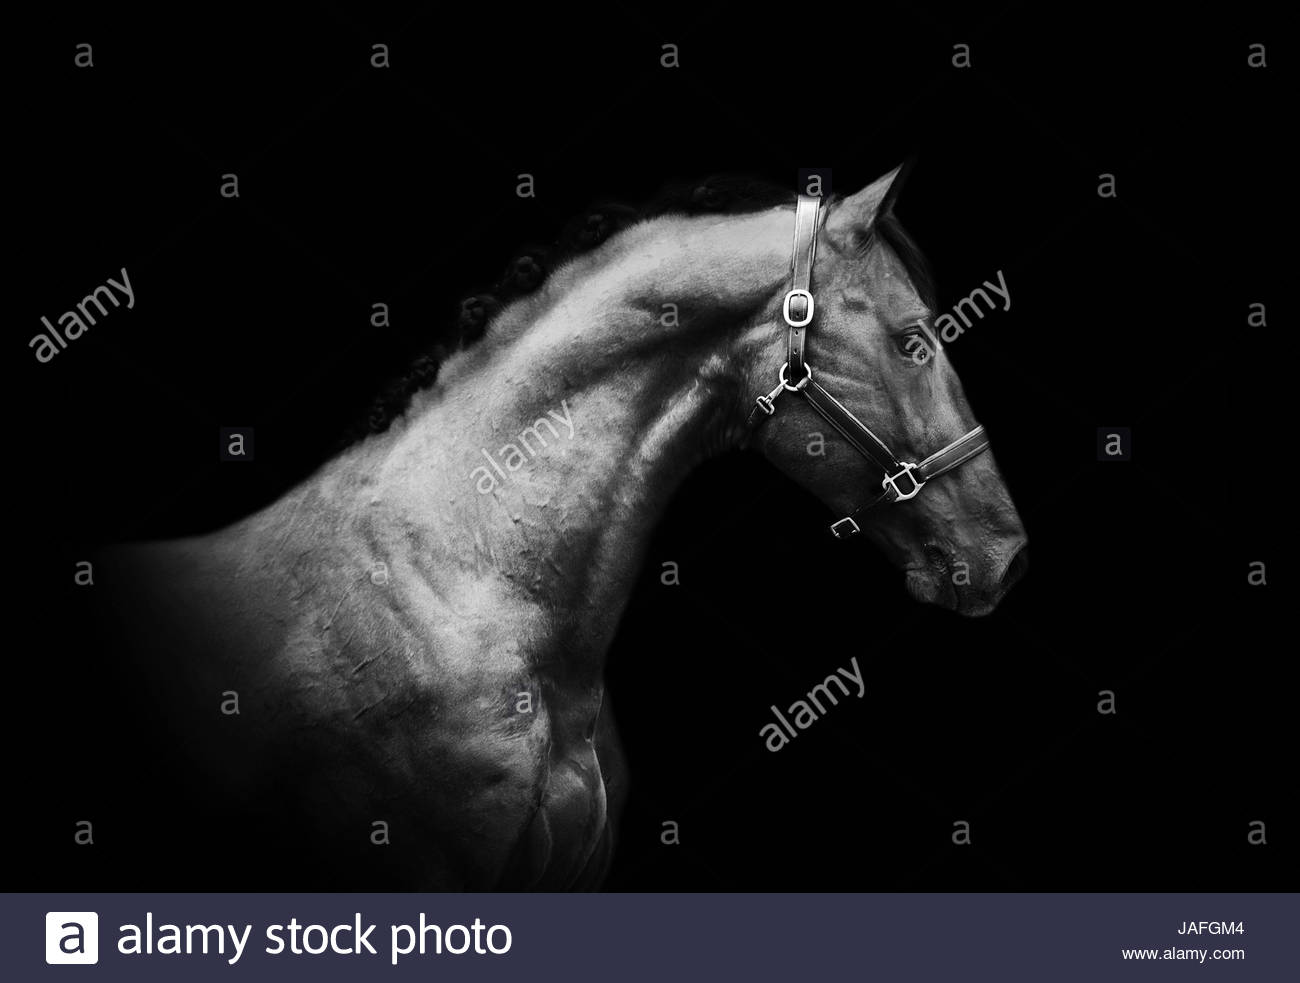 sportive horse - Stock Image